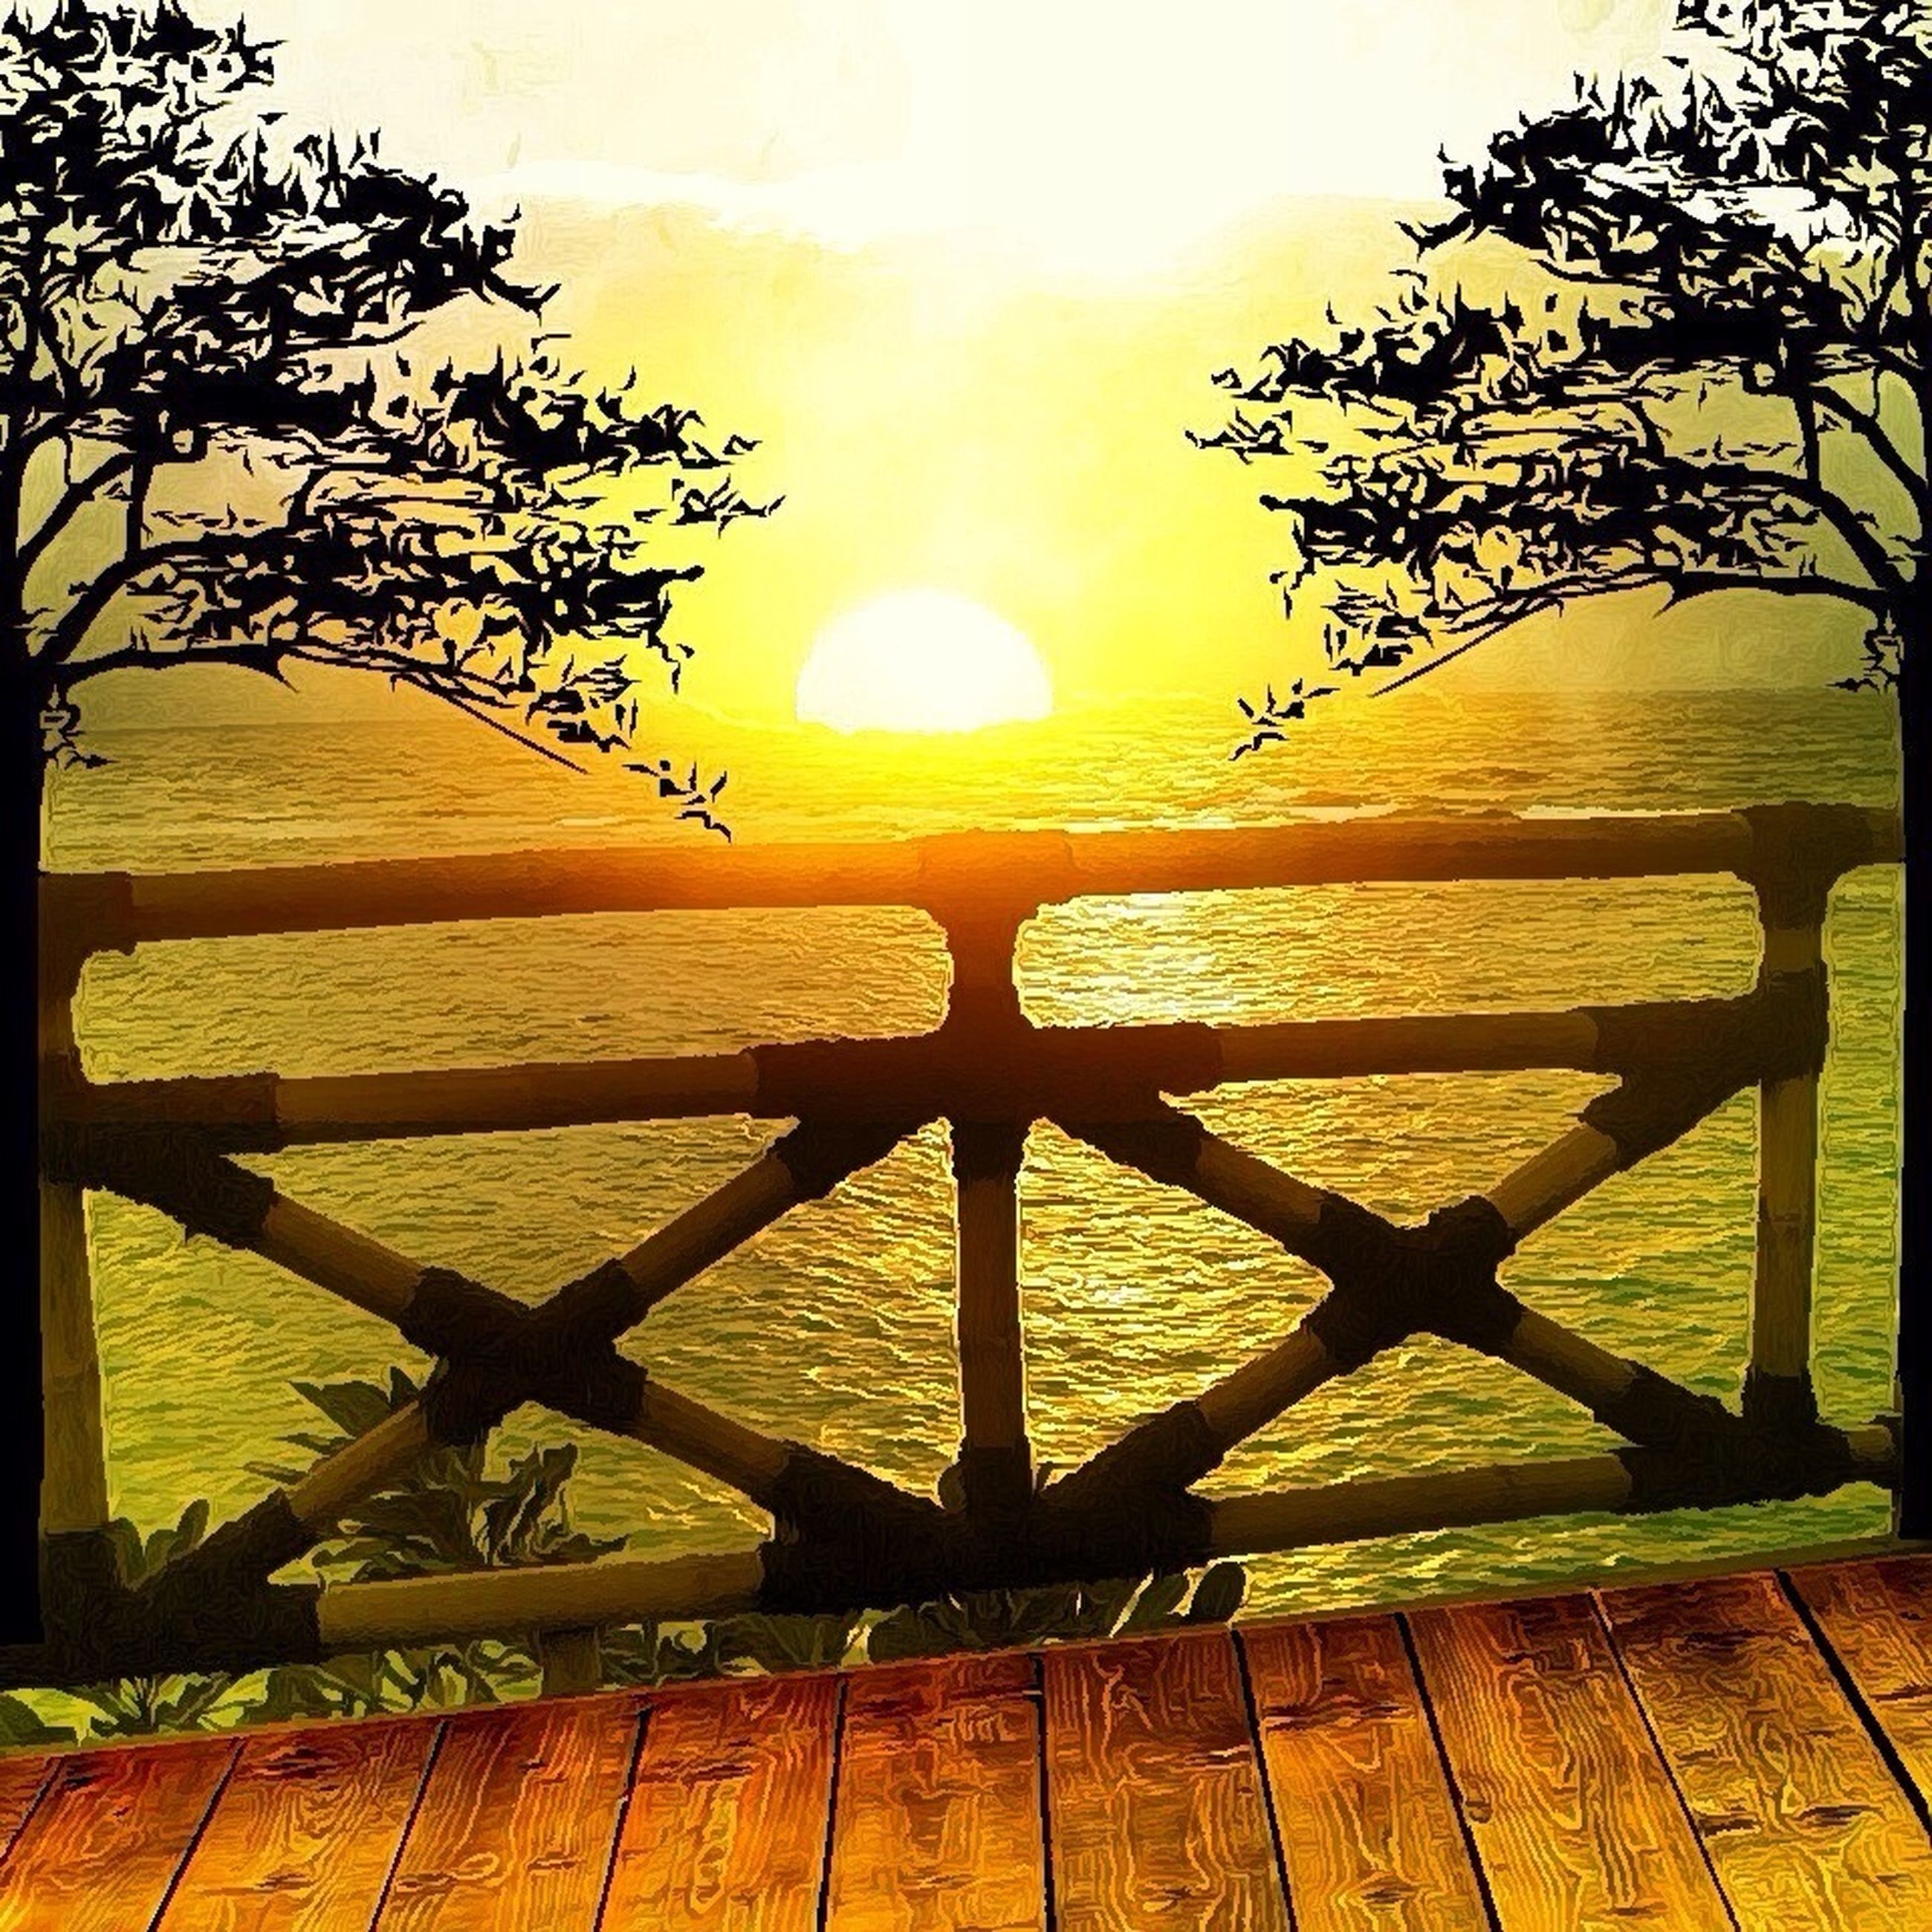 sunset, tree, sun, railing, sunlight, tranquility, sky, fence, silhouette, branch, nature, tranquil scene, scenics, sunbeam, beauty in nature, bench, wood - material, orange color, lens flare, idyllic